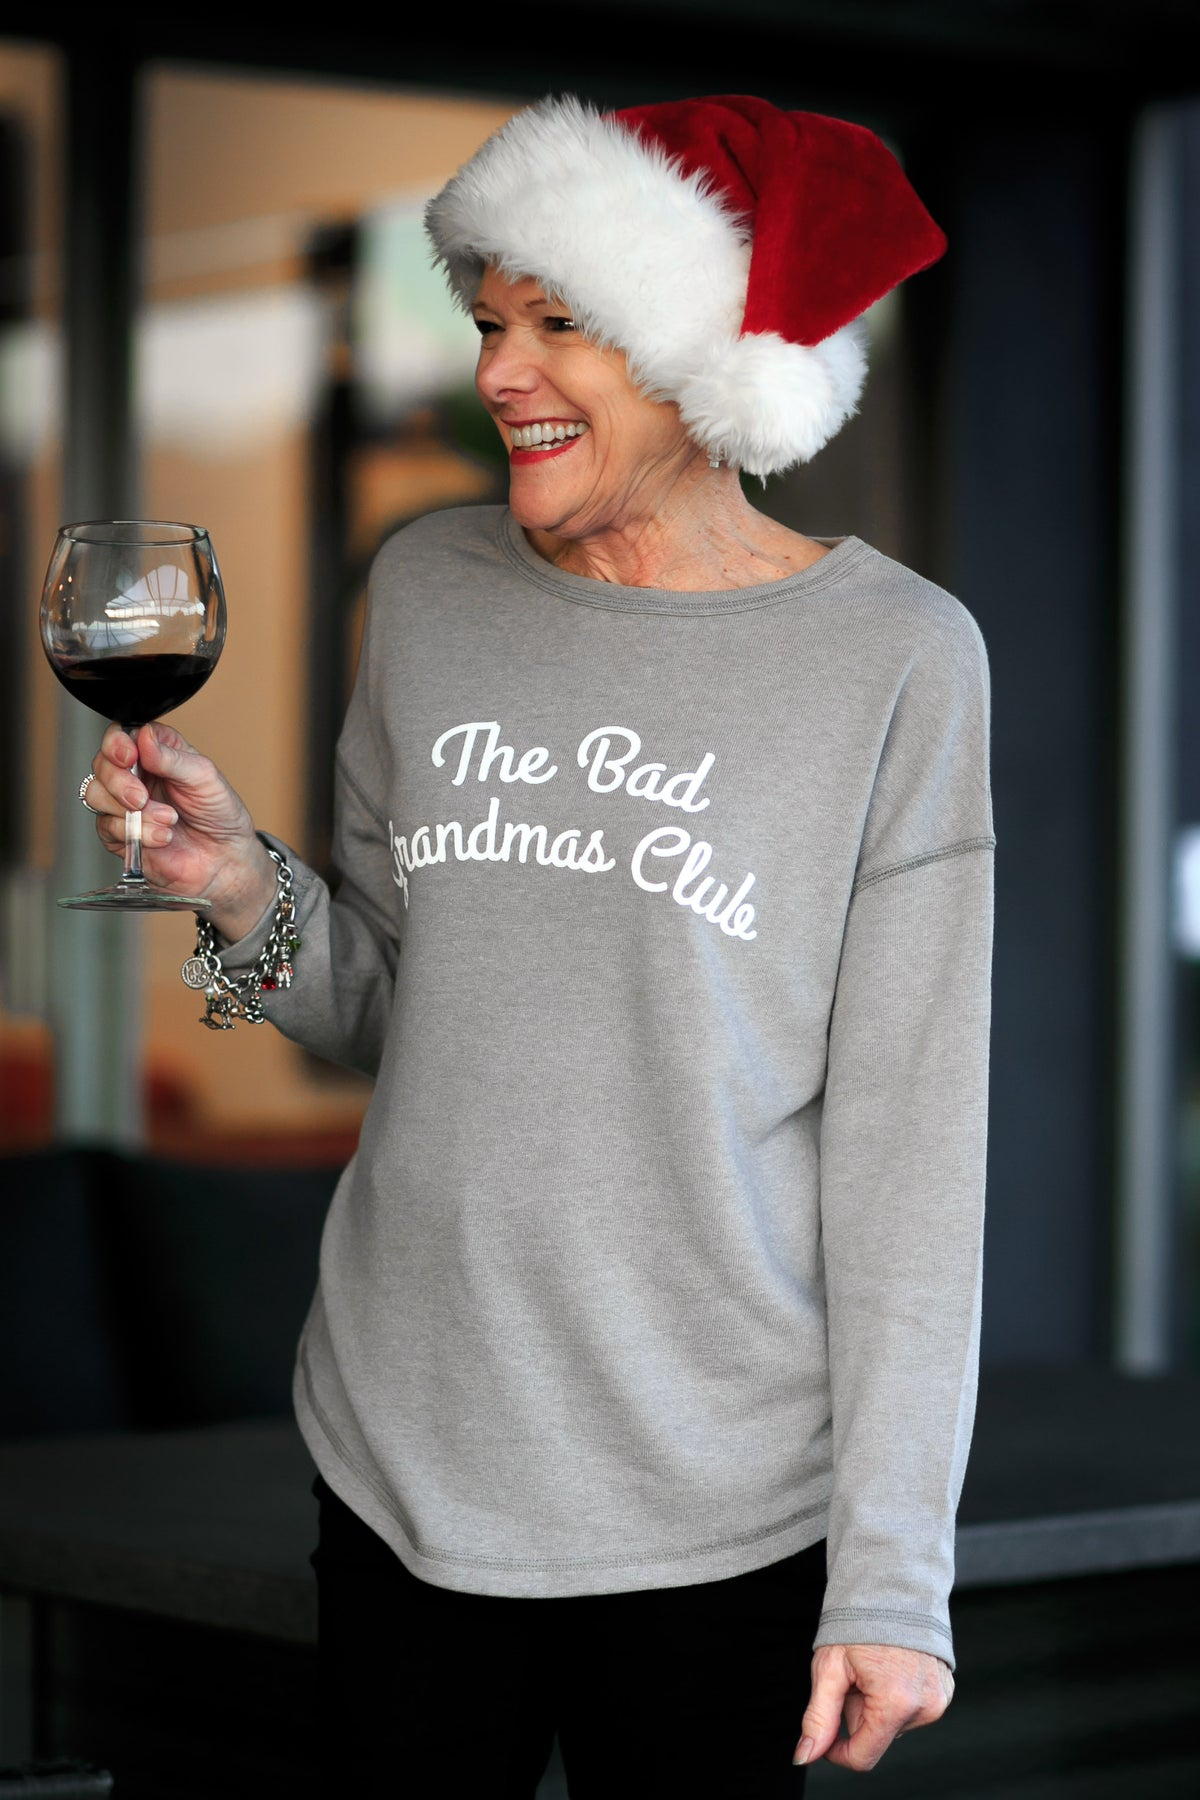 """THE BAD GRANDMAS CLUB"" SWEATER - THE BAD DADS CLUB"